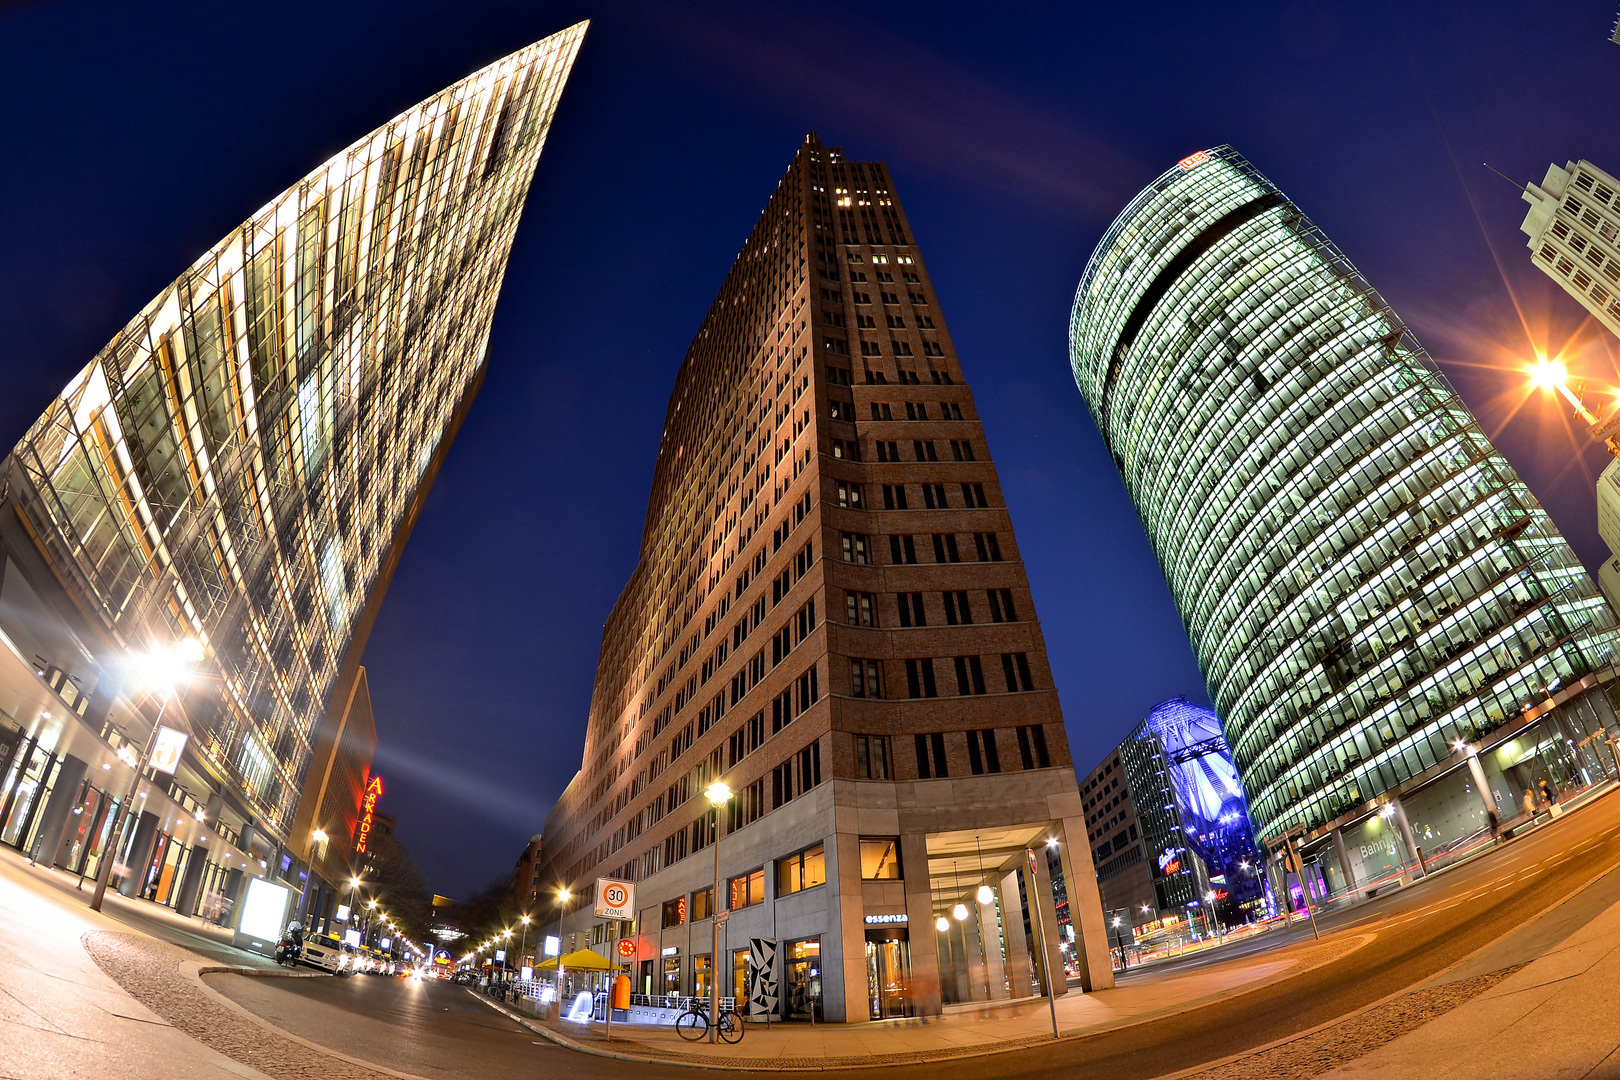 Potsdamer Platz @ Night